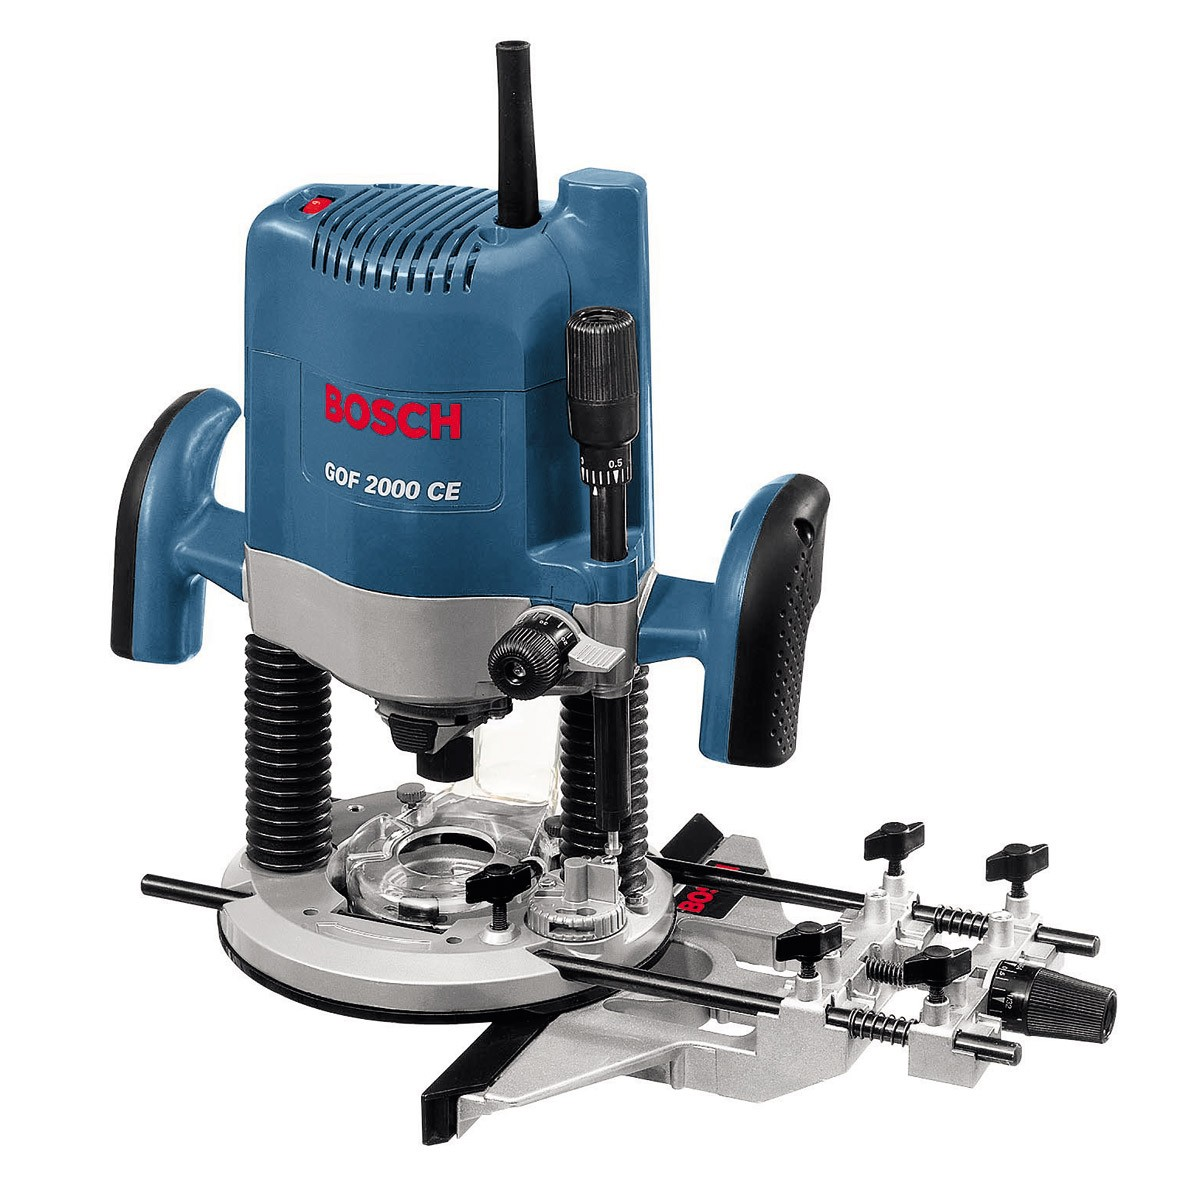 "Bosch GOF 2000 CE Professional 1/2"" Router 110v"